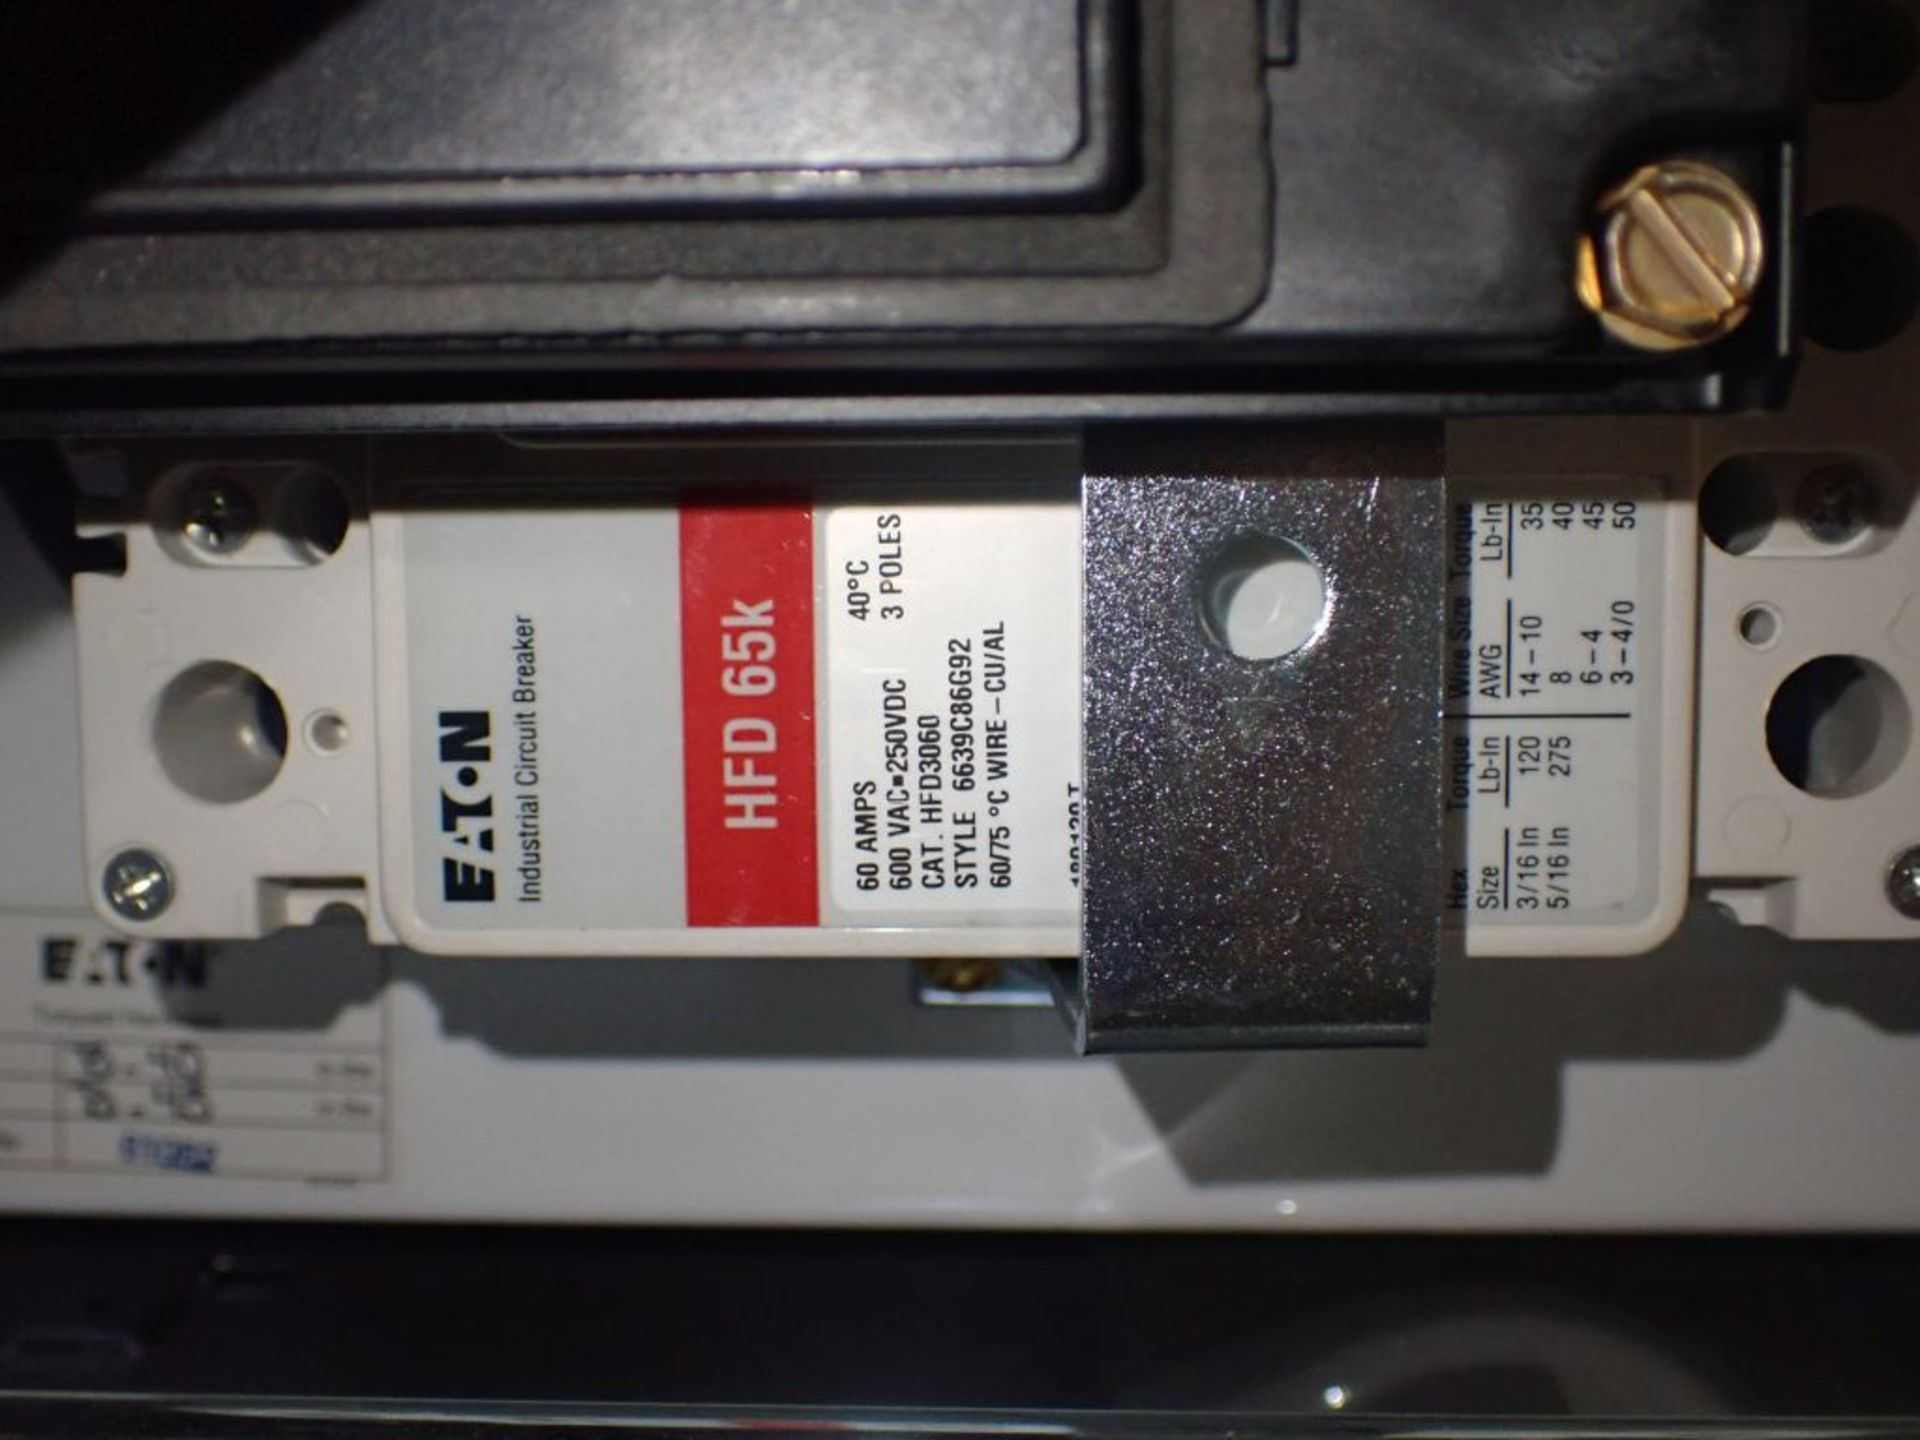 Eaton Freedom Flashgard Motor Control Center   (3) F216-15A-10HP; (1) FDRB-125A, with 150A - Image 34 of 57